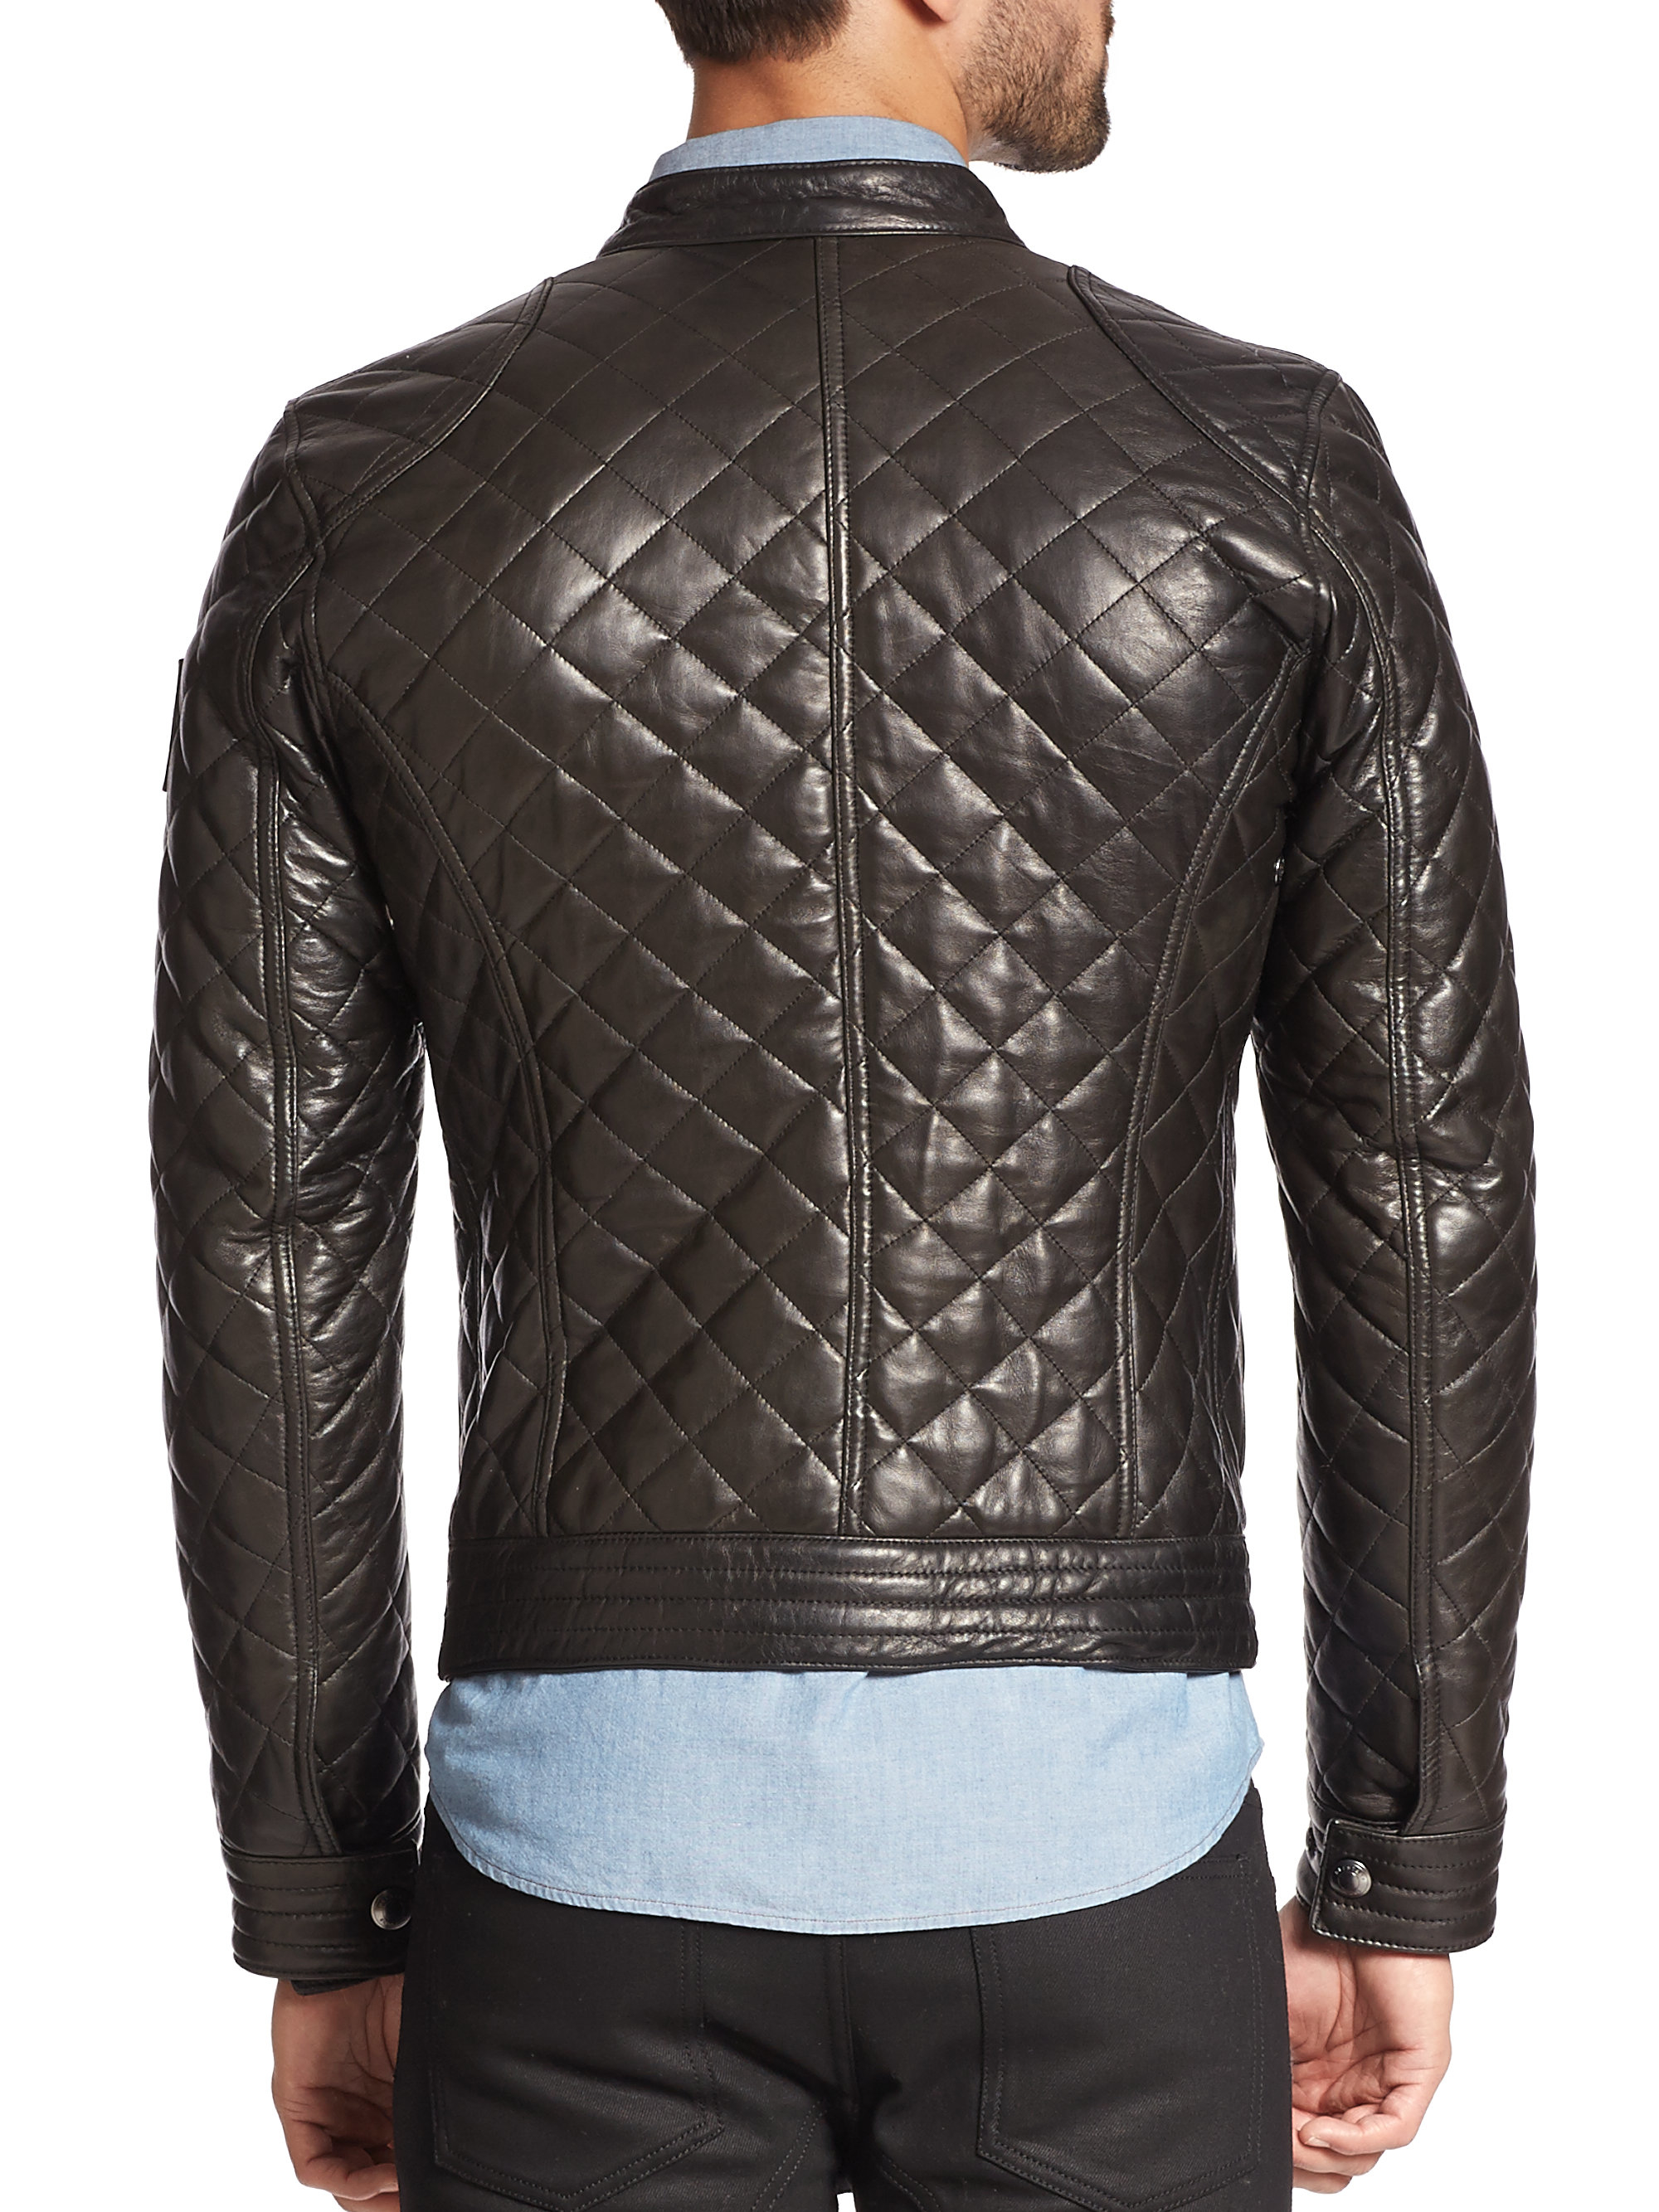 Belstaff Quilted Leather